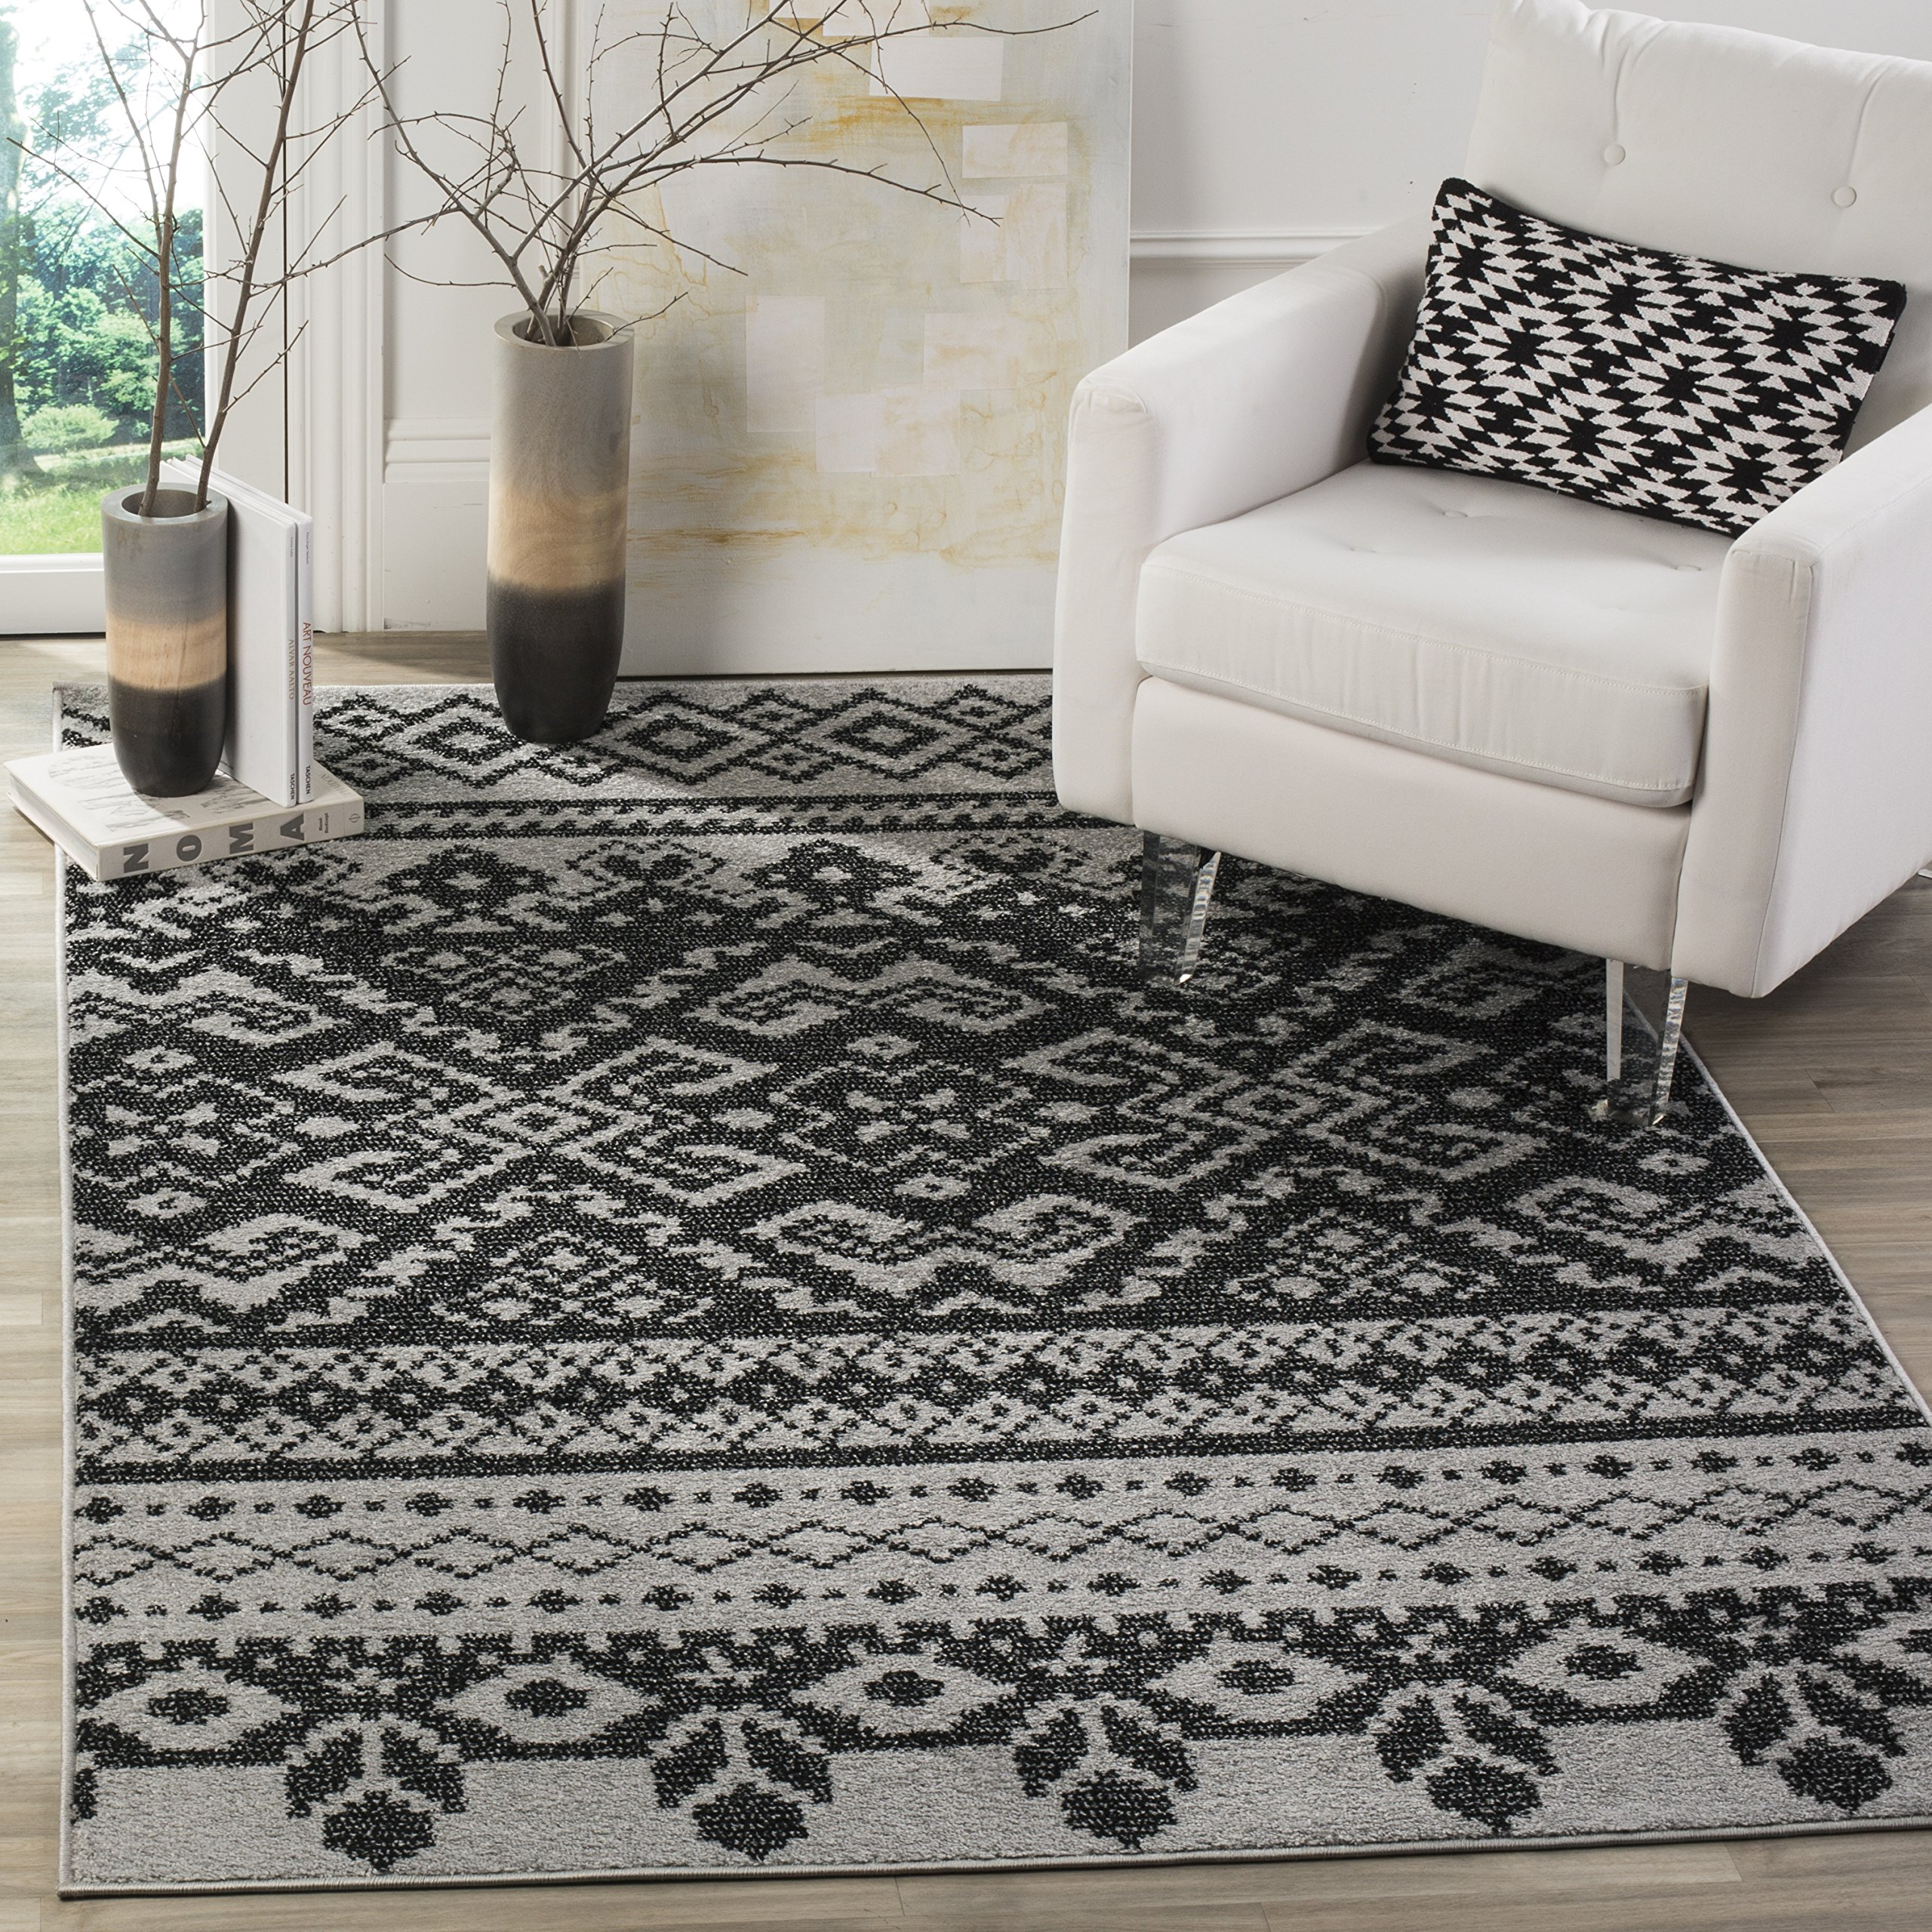 Safavieh Adirondack Collection ADR107A Silver and Black Rustic Bohemian Area Rug (9' x 12')